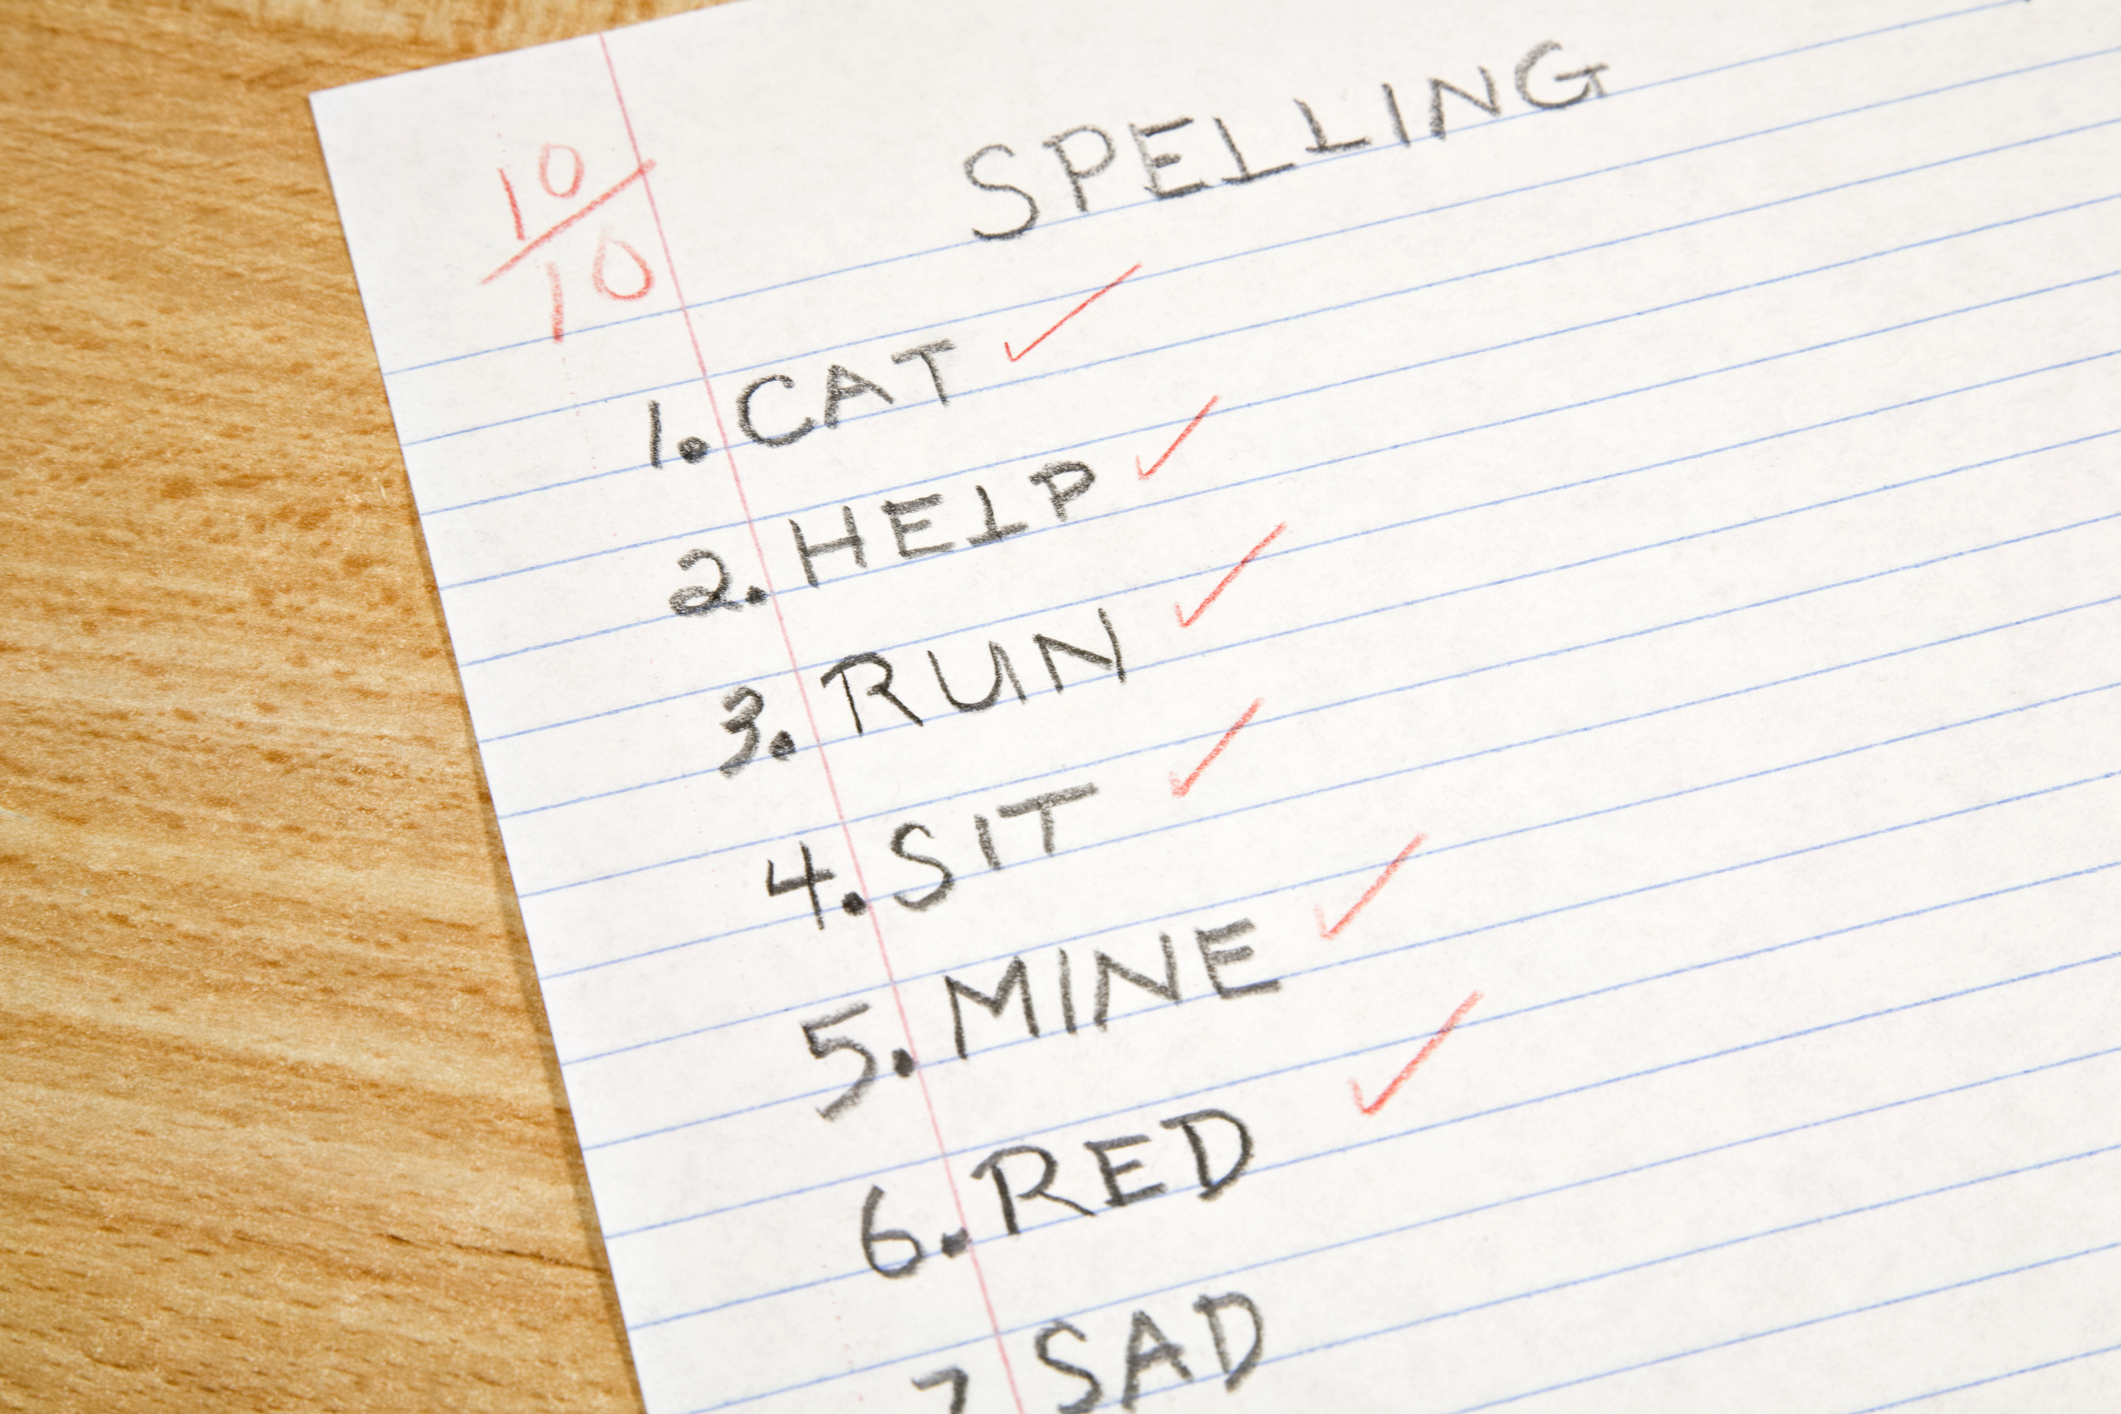 In the era of spellcheck and auto-correct, does it matter